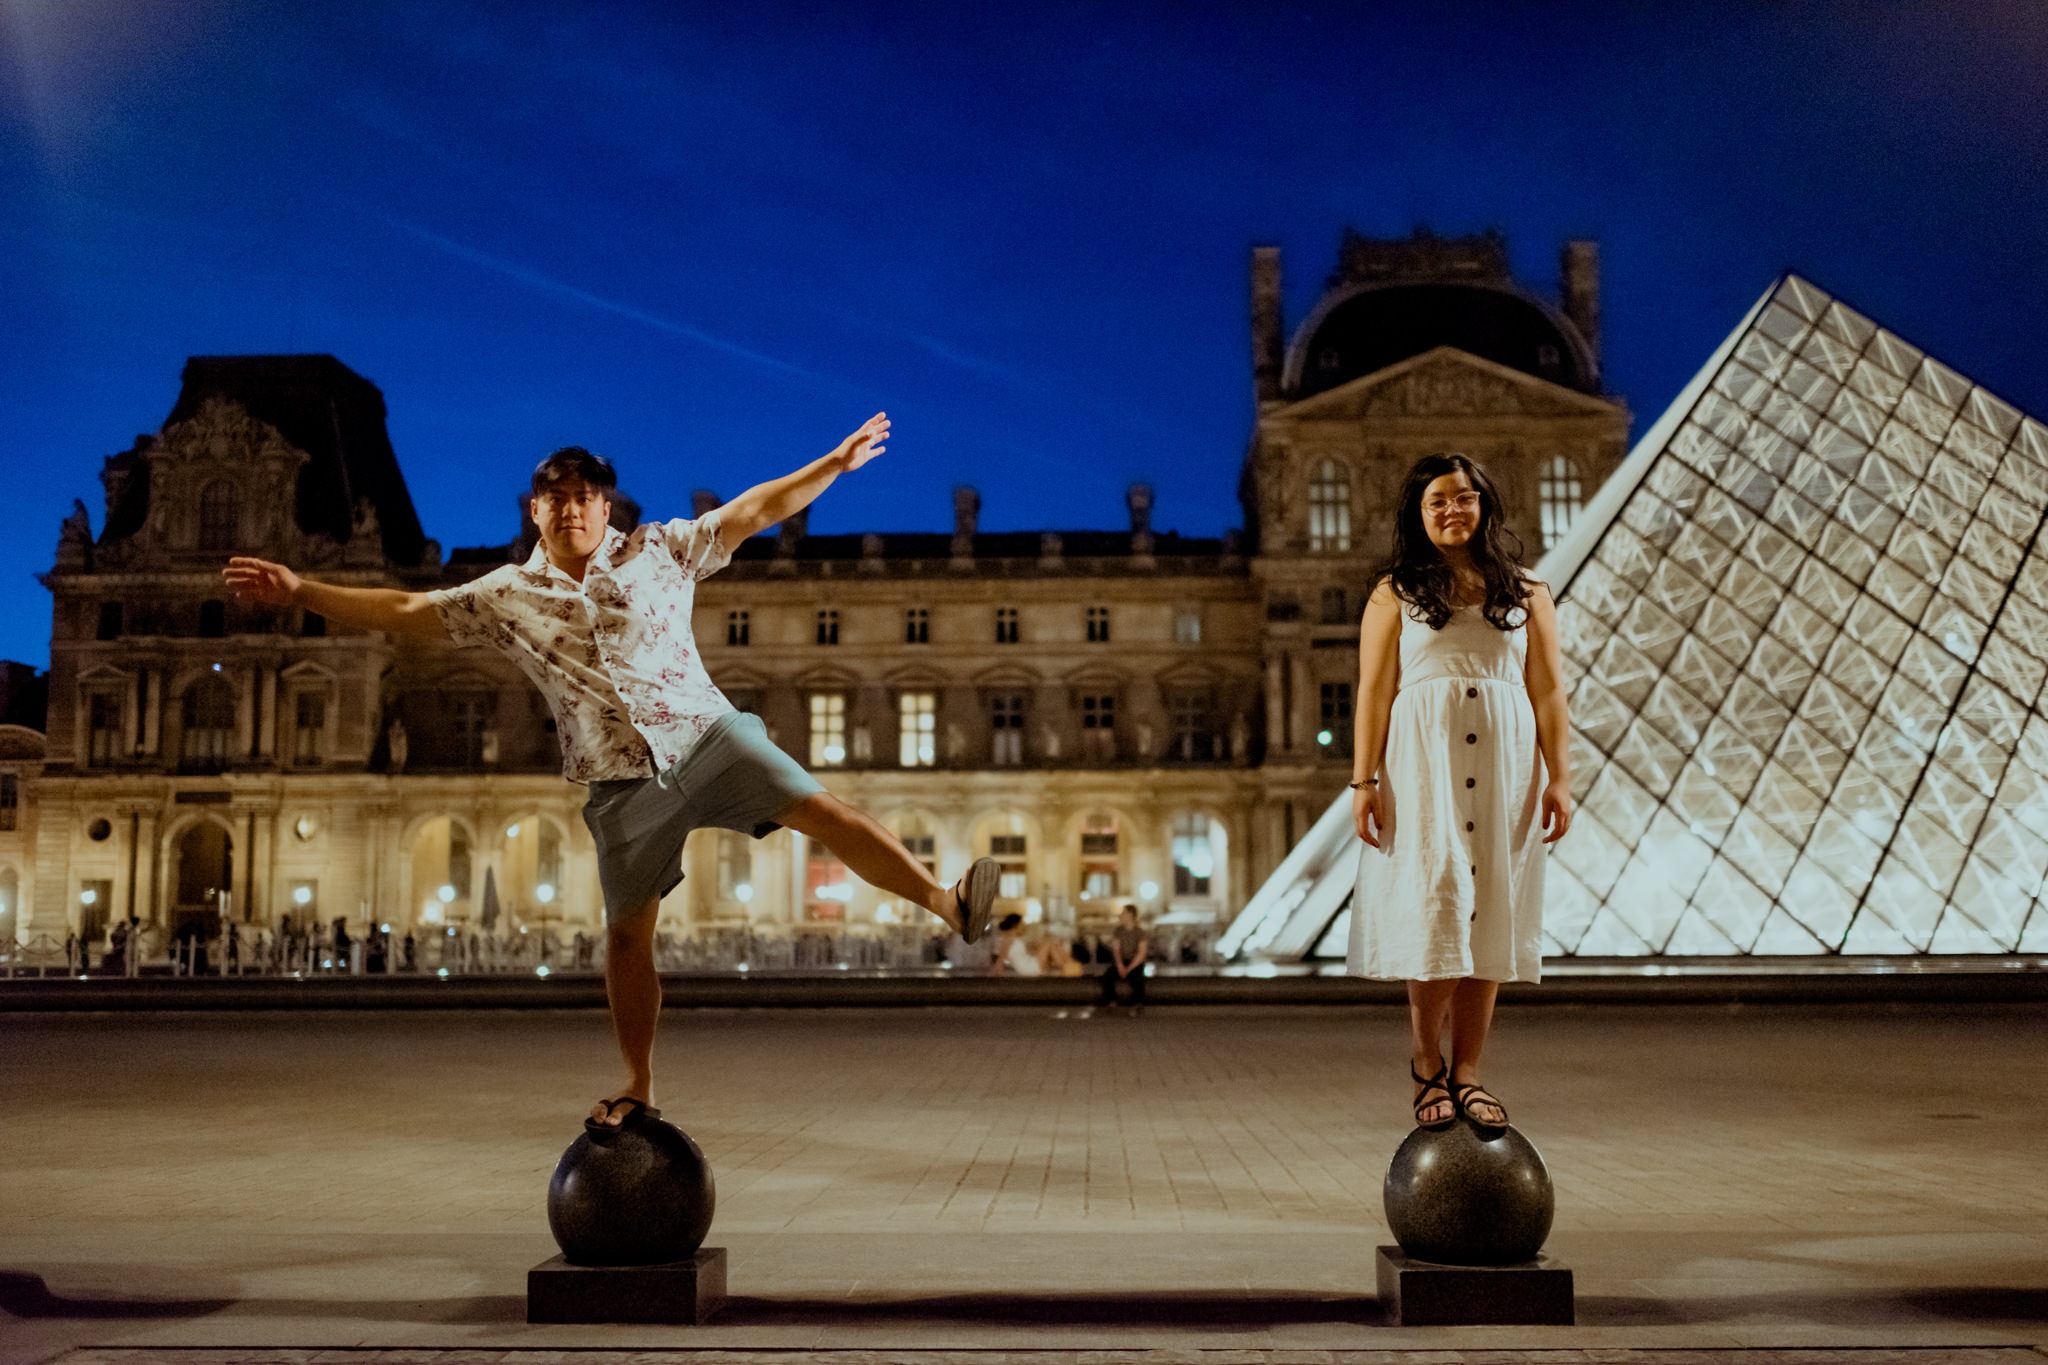 Asian couple try to balance on round balls at the Louvre, Paris.